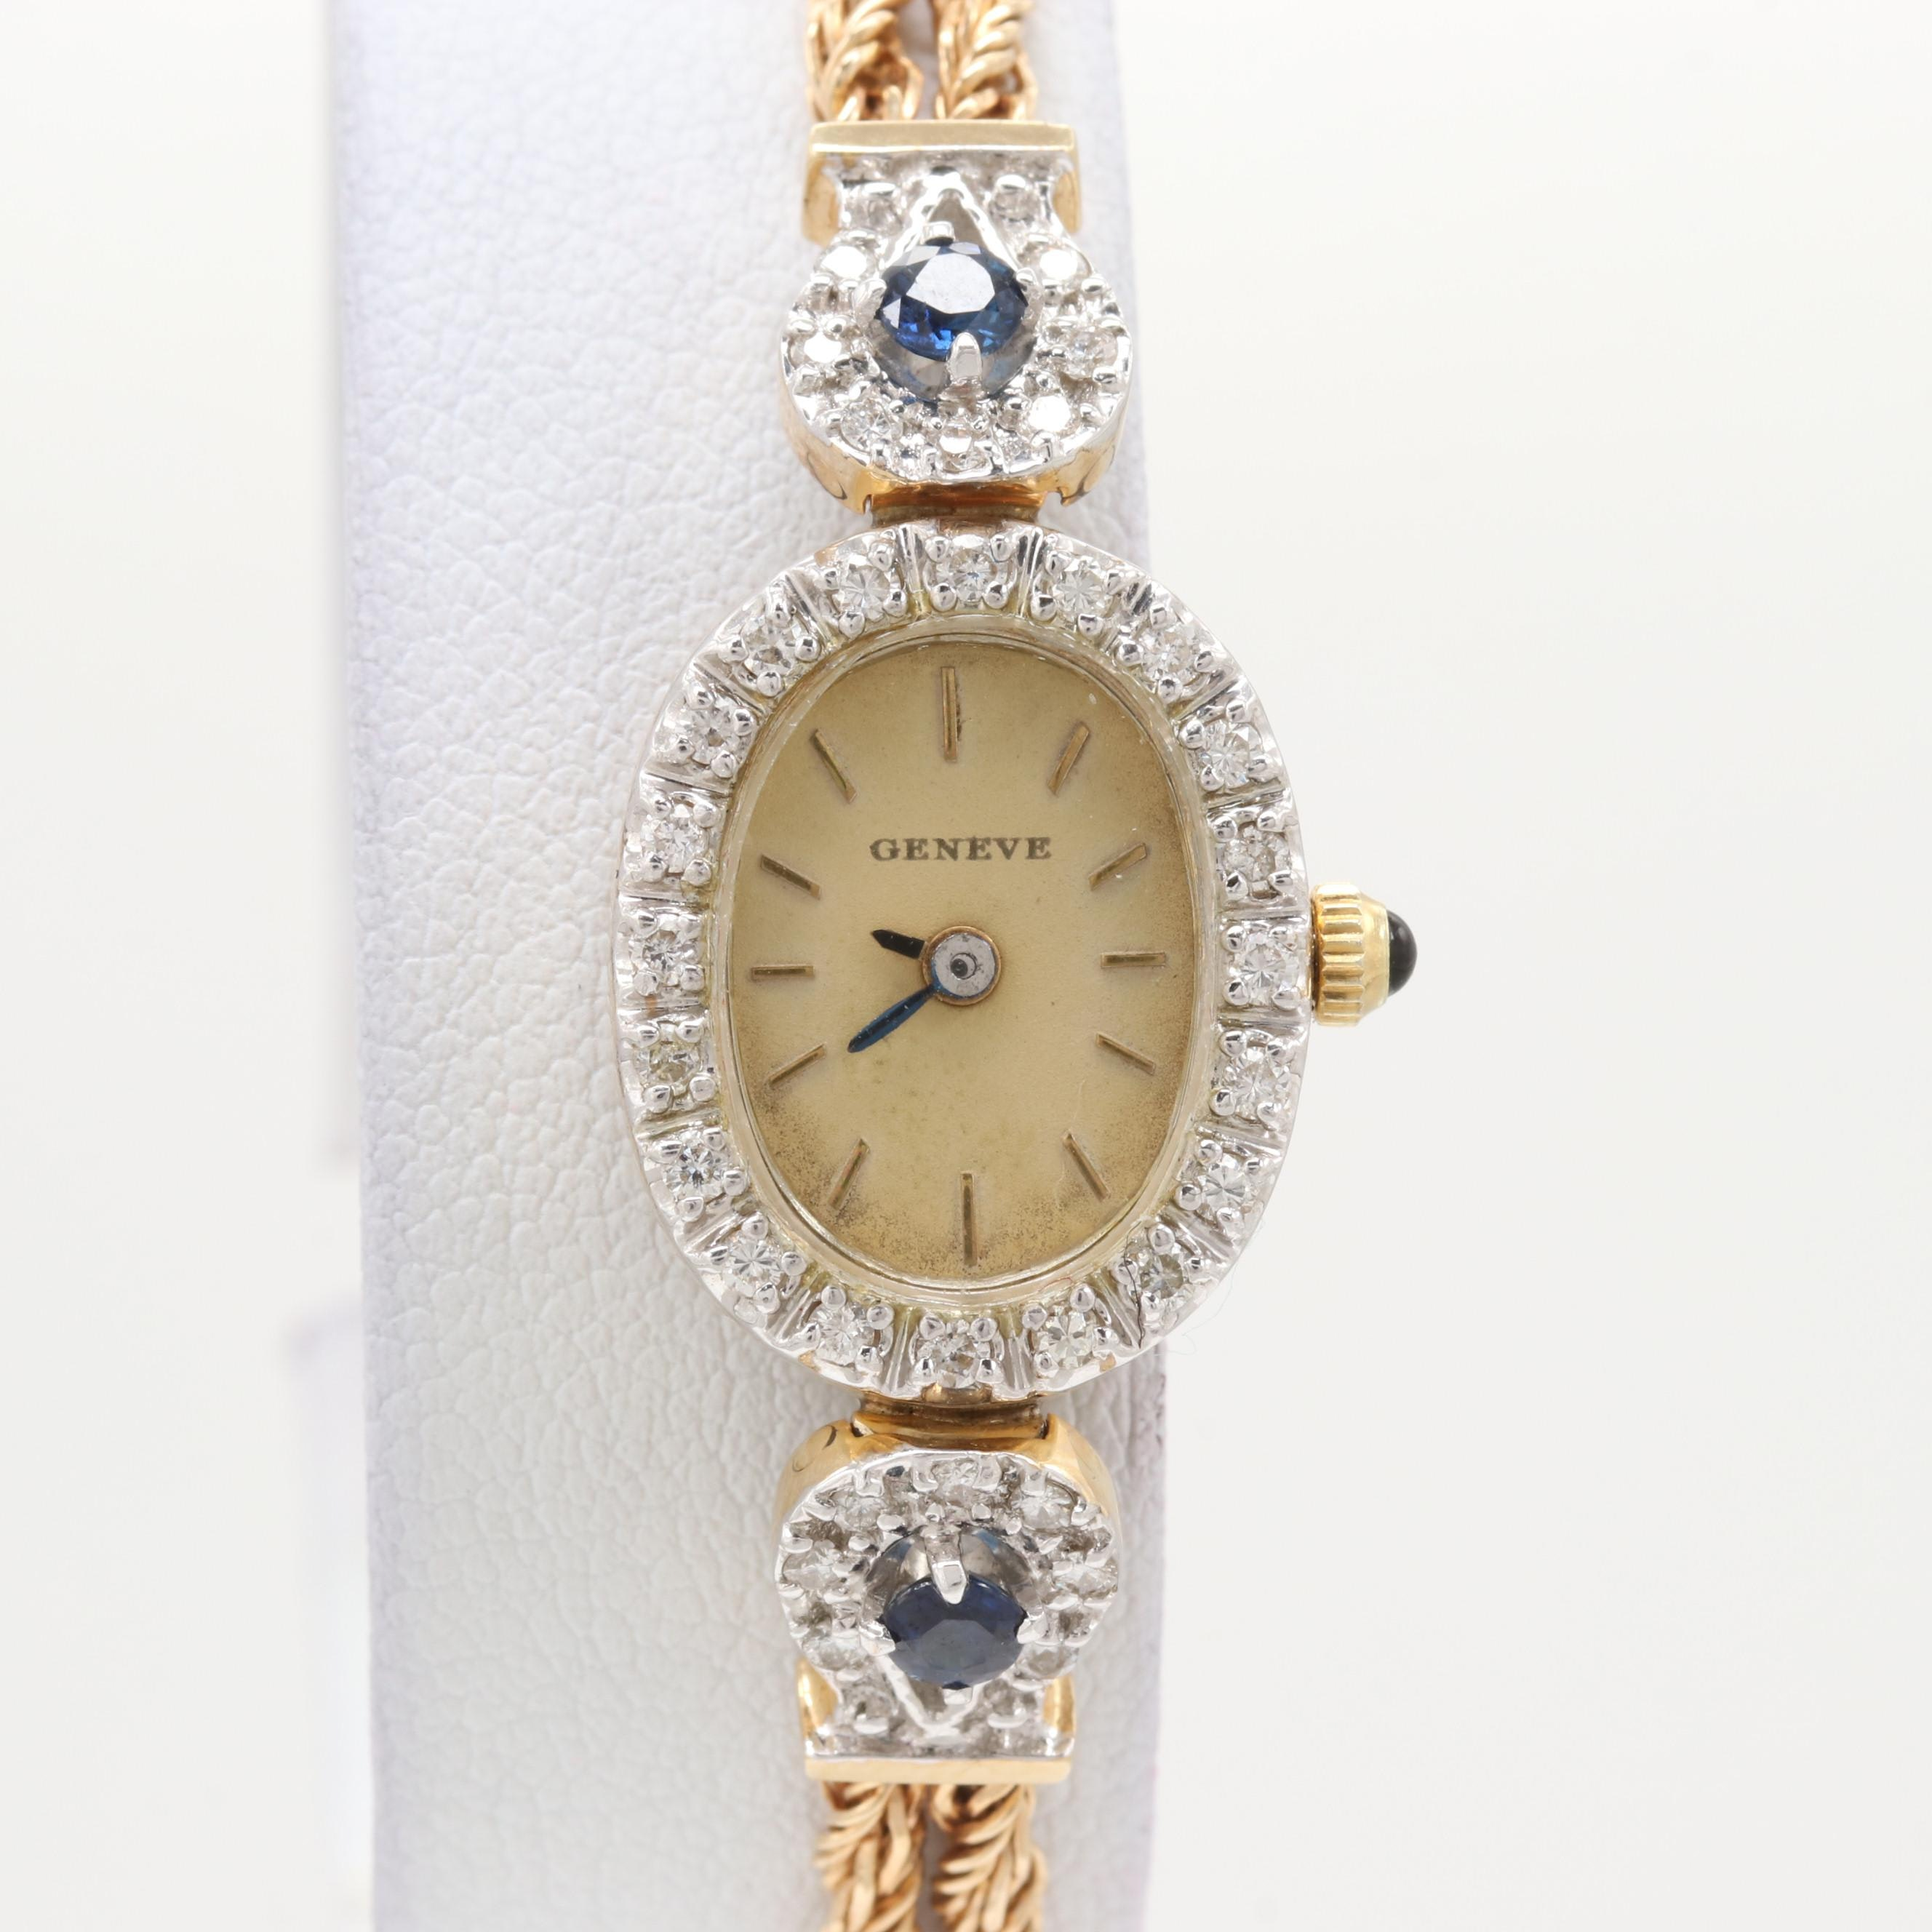 Geneve 14K Yellow Gold Diamond and Sapphire Quartz Wristwatch